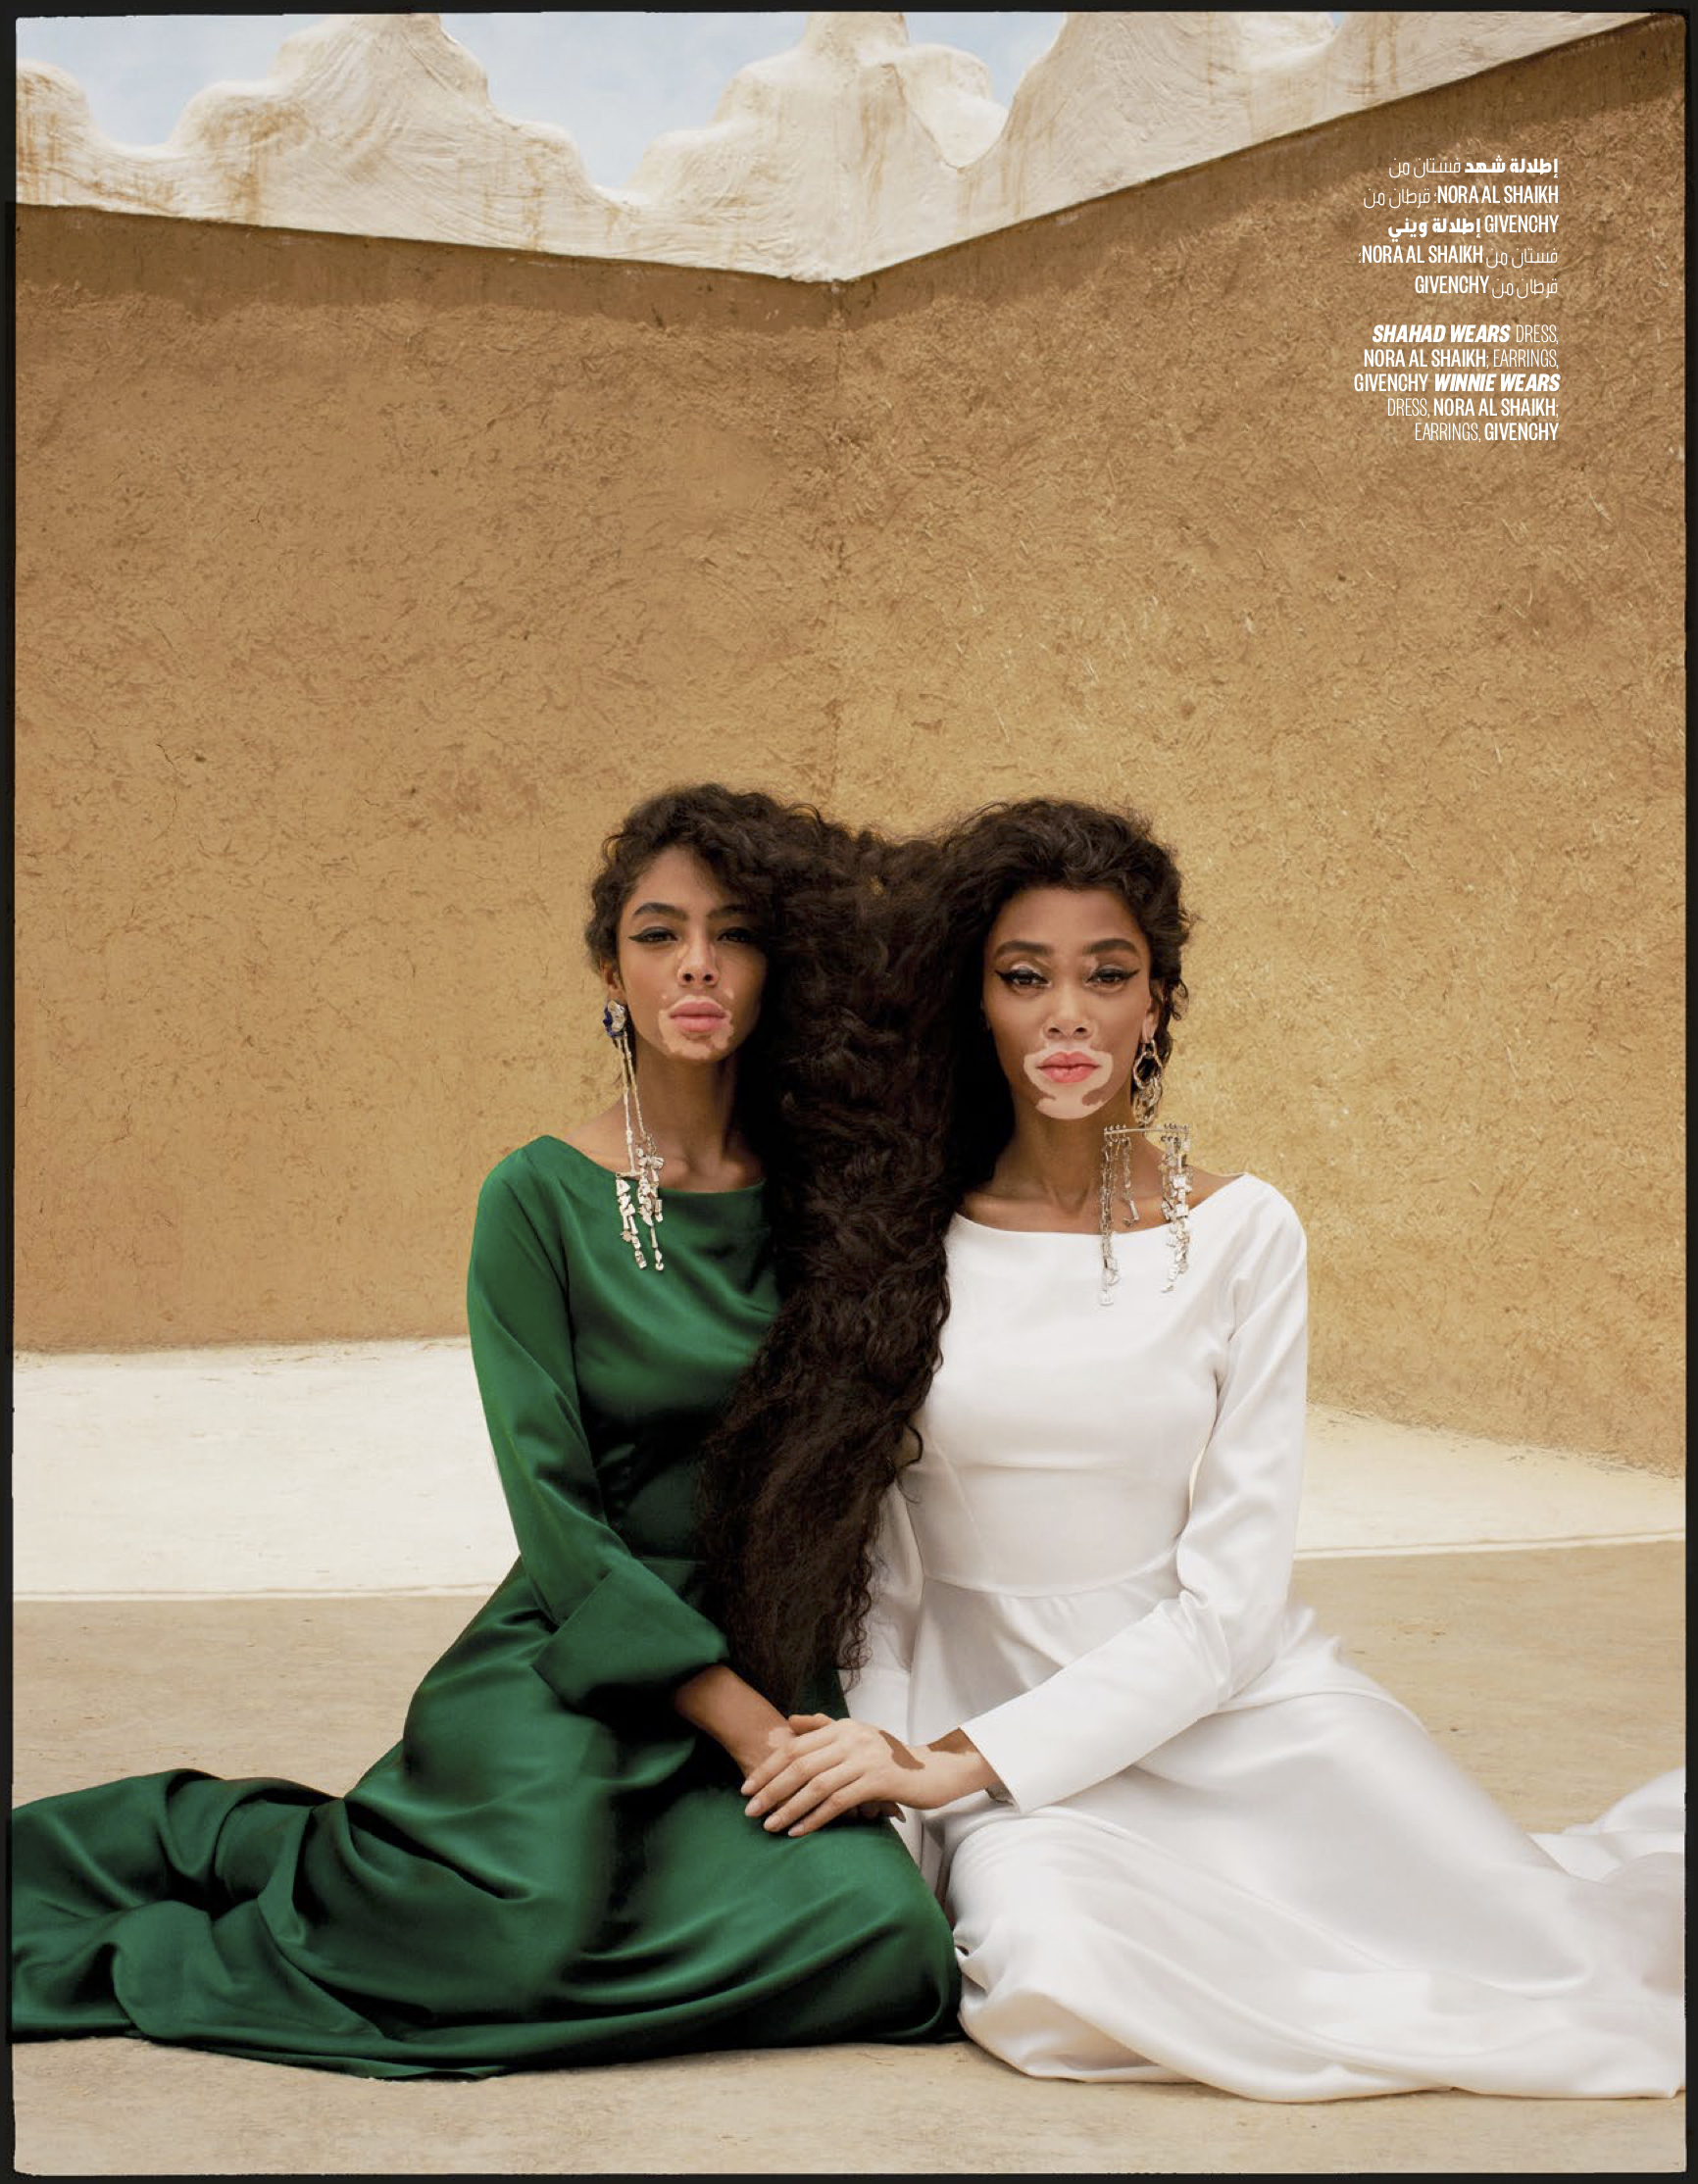 June Vogue Arabia 19 6.jpg